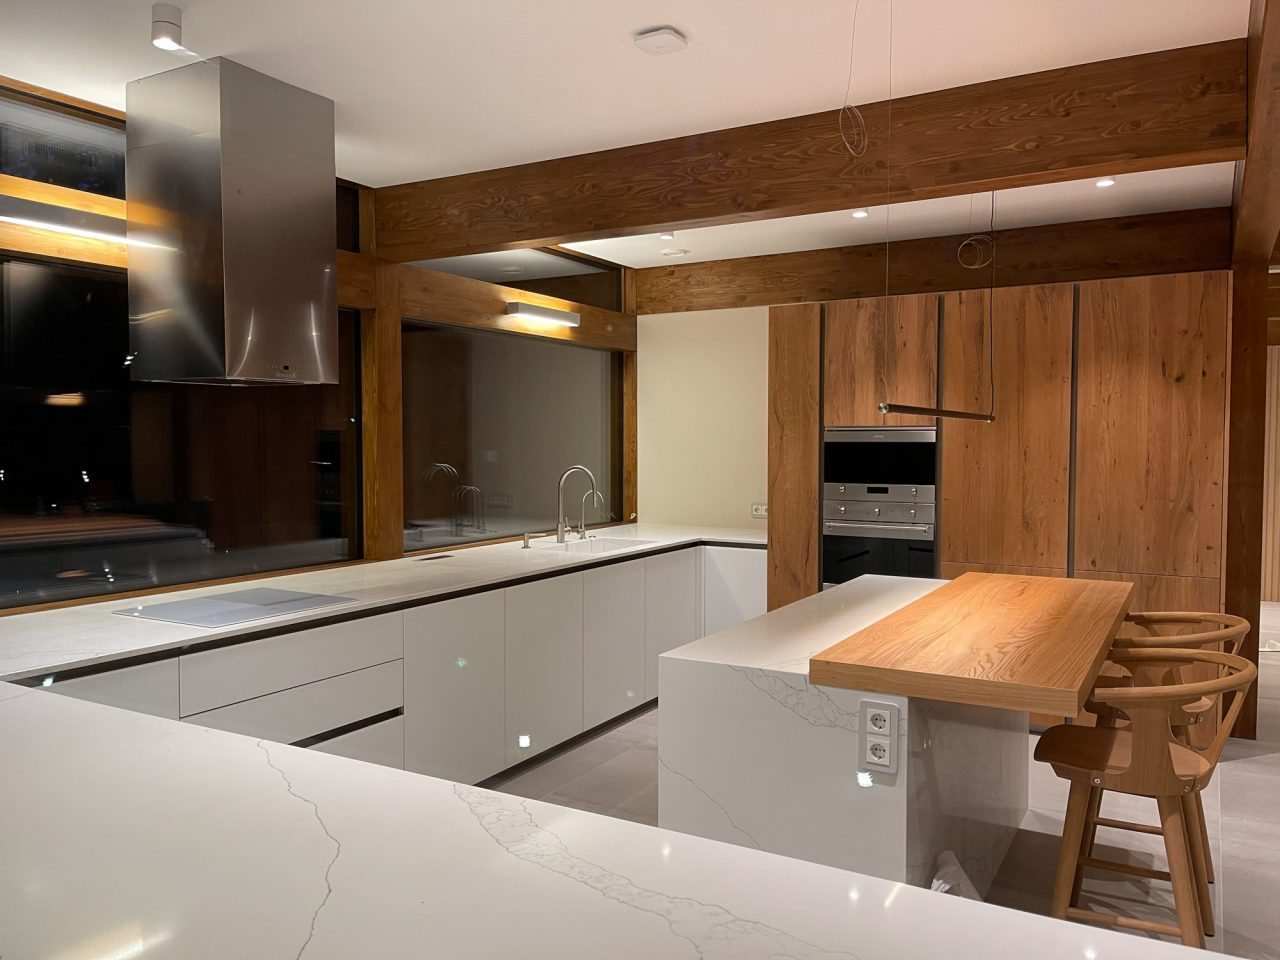 Hlass_house_KAGER - Hurii_33